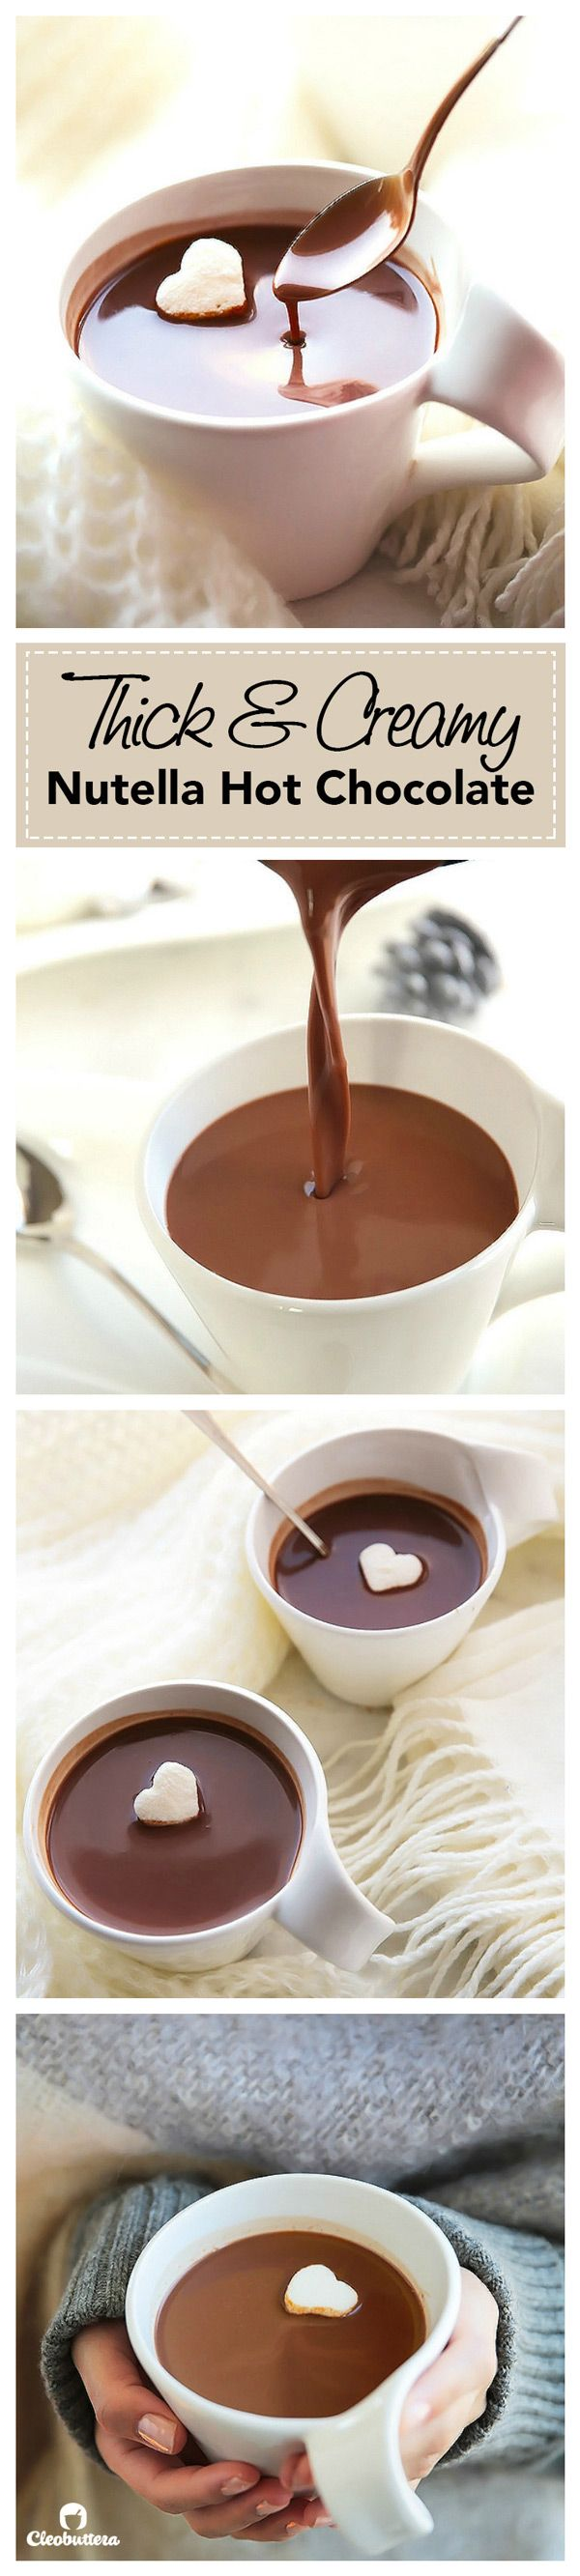 This is as close as you could get to drinking NUTELLA in liquid form. Dreamy!